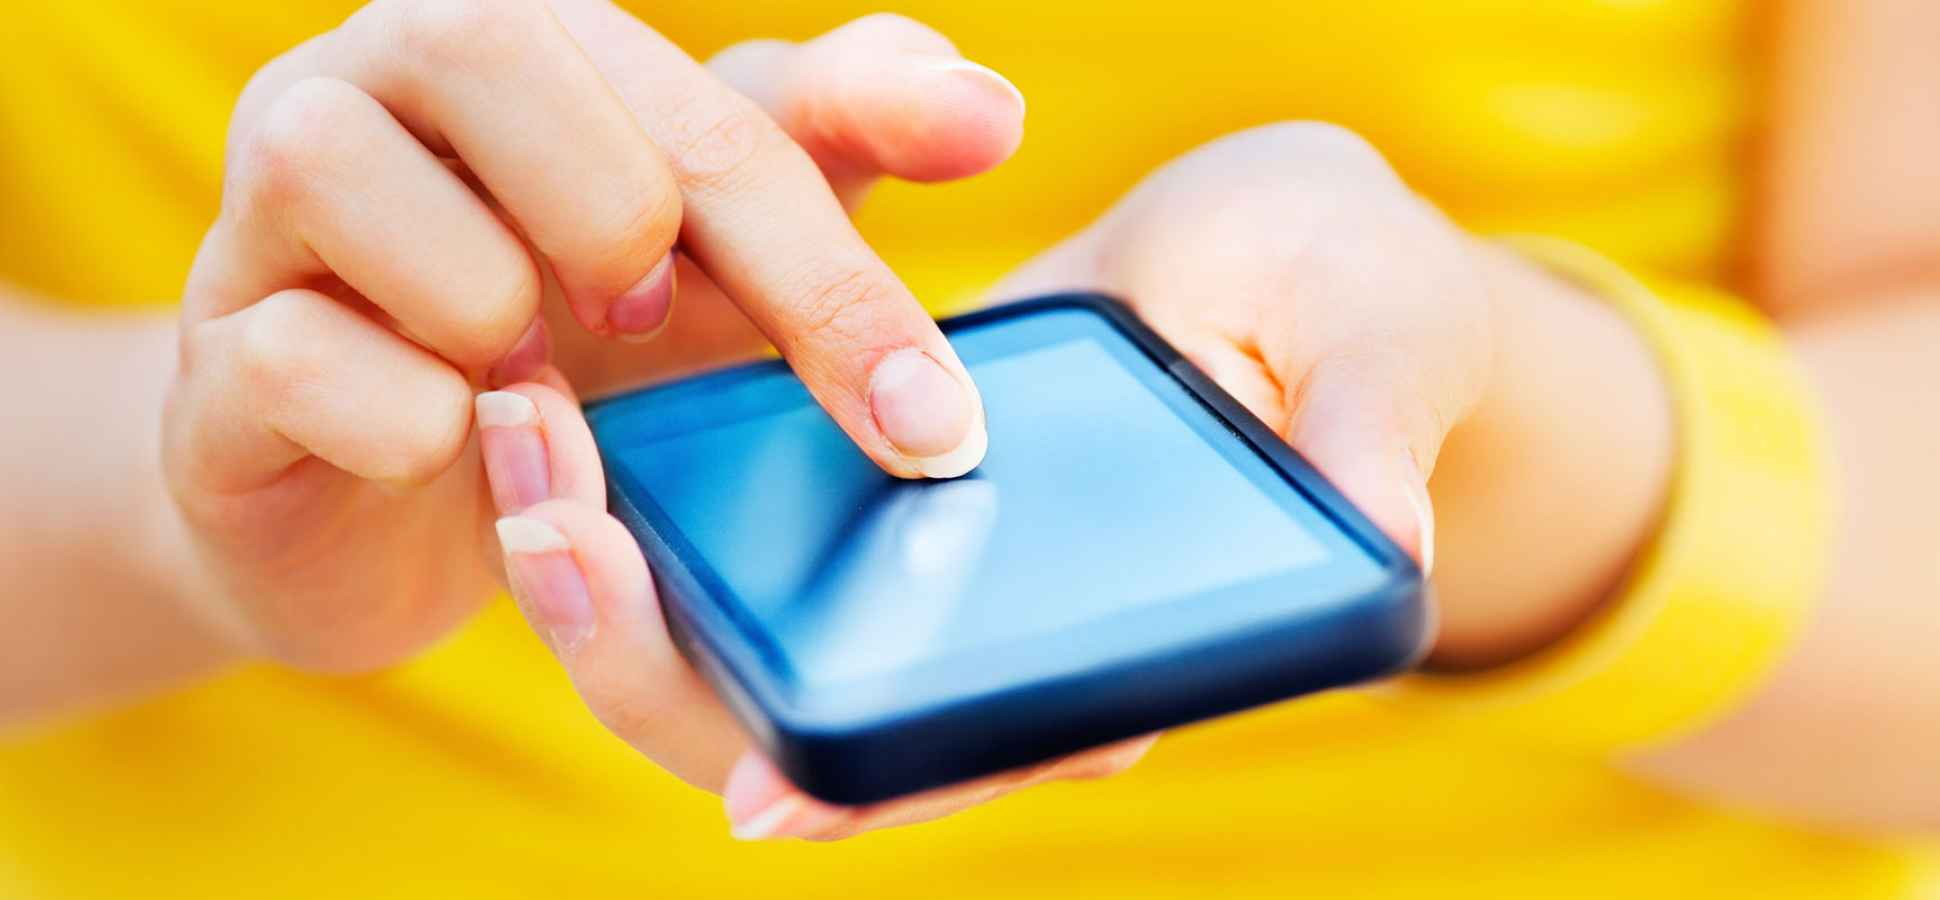 5 Mobile Ad Trends to Watch in 2014